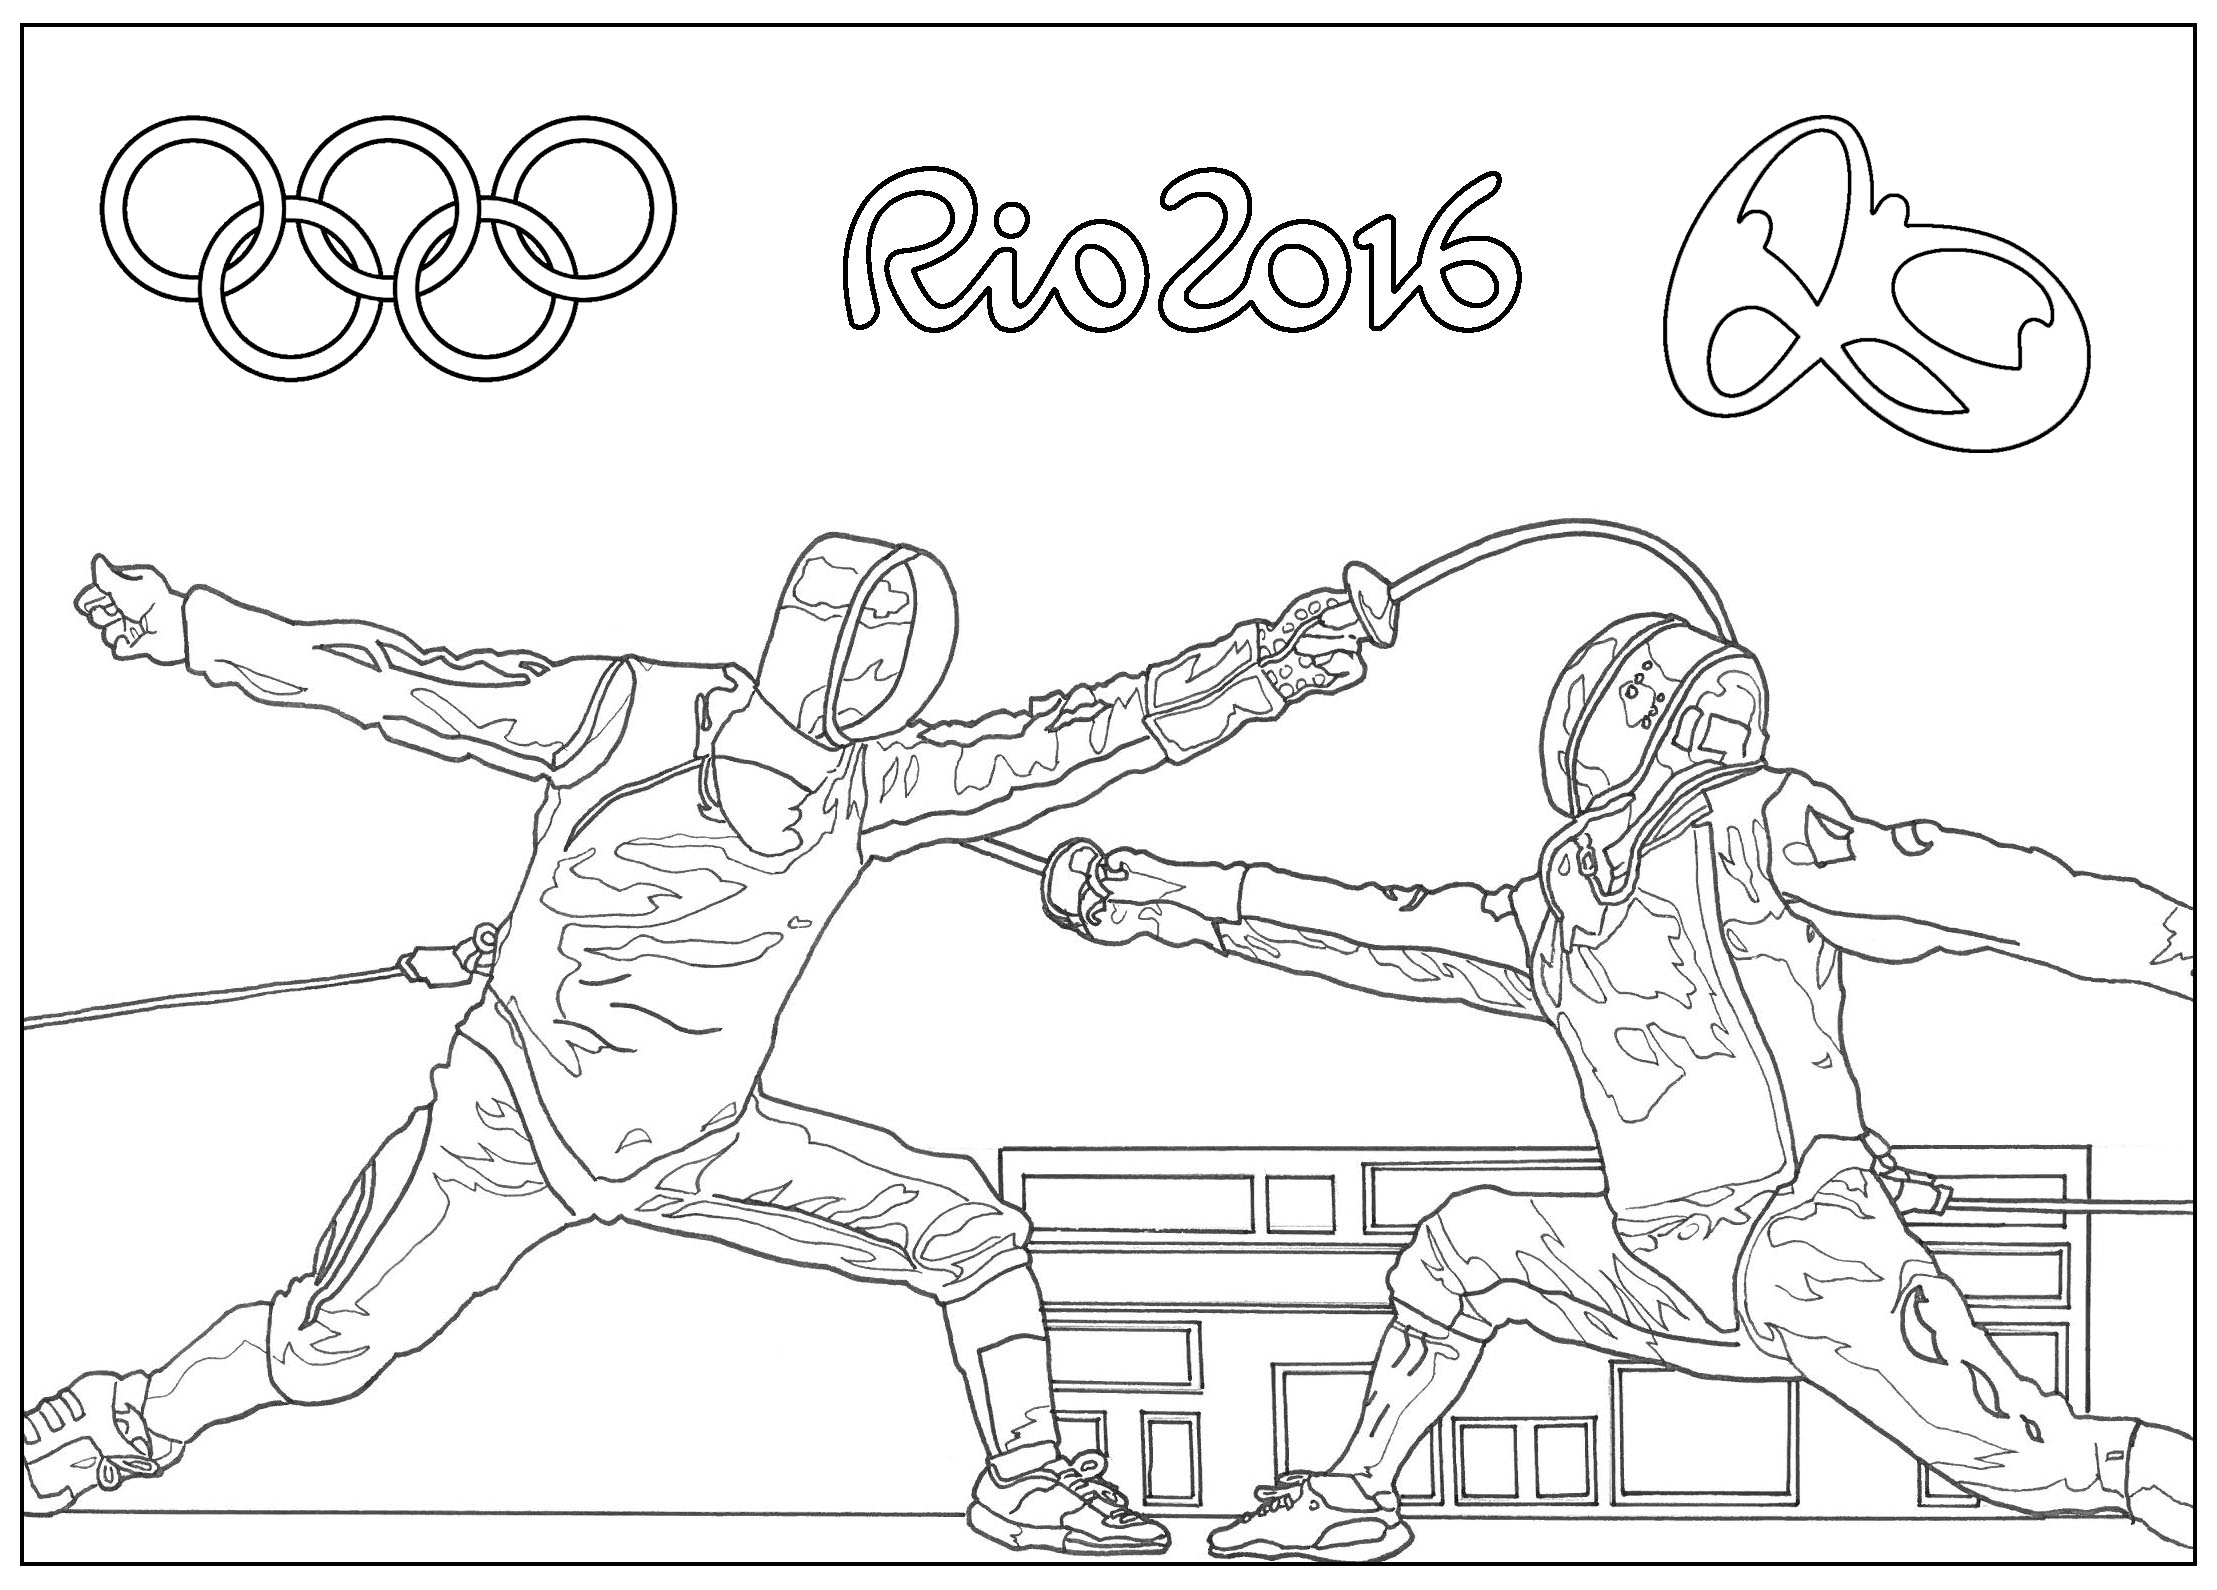 Rio 2016 Olympic Games Fencing Olympic & Sport Adult Coloring Pages Collection Of Olympic Games Gymnastic Paris 2024 Olympic & Sport Adult to Print